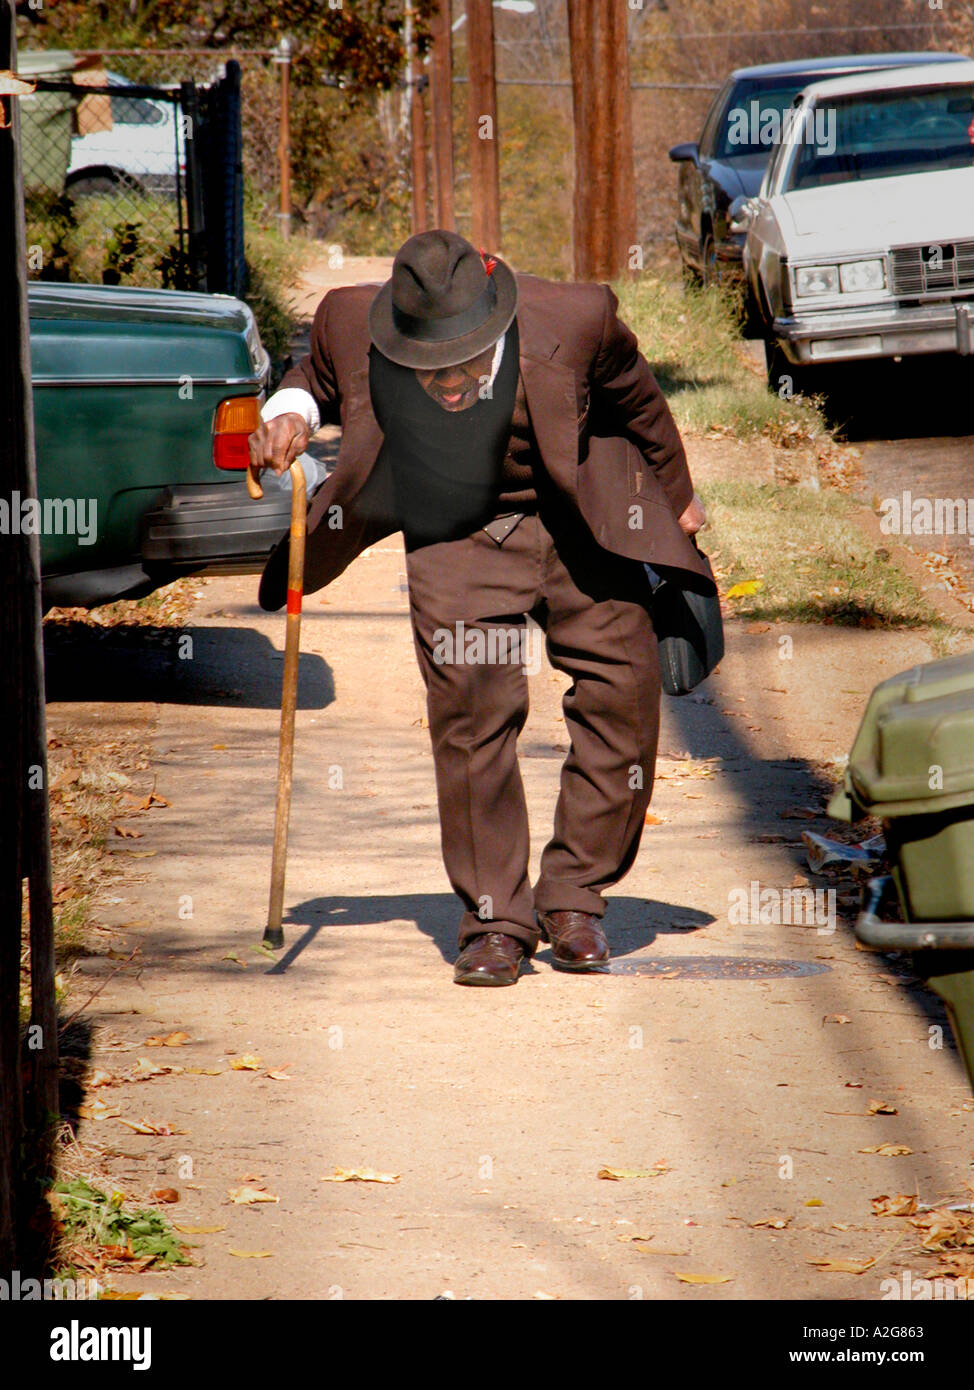 Dowagers Hump Stock Photos & Dowagers Hump Stock Images - Alamy